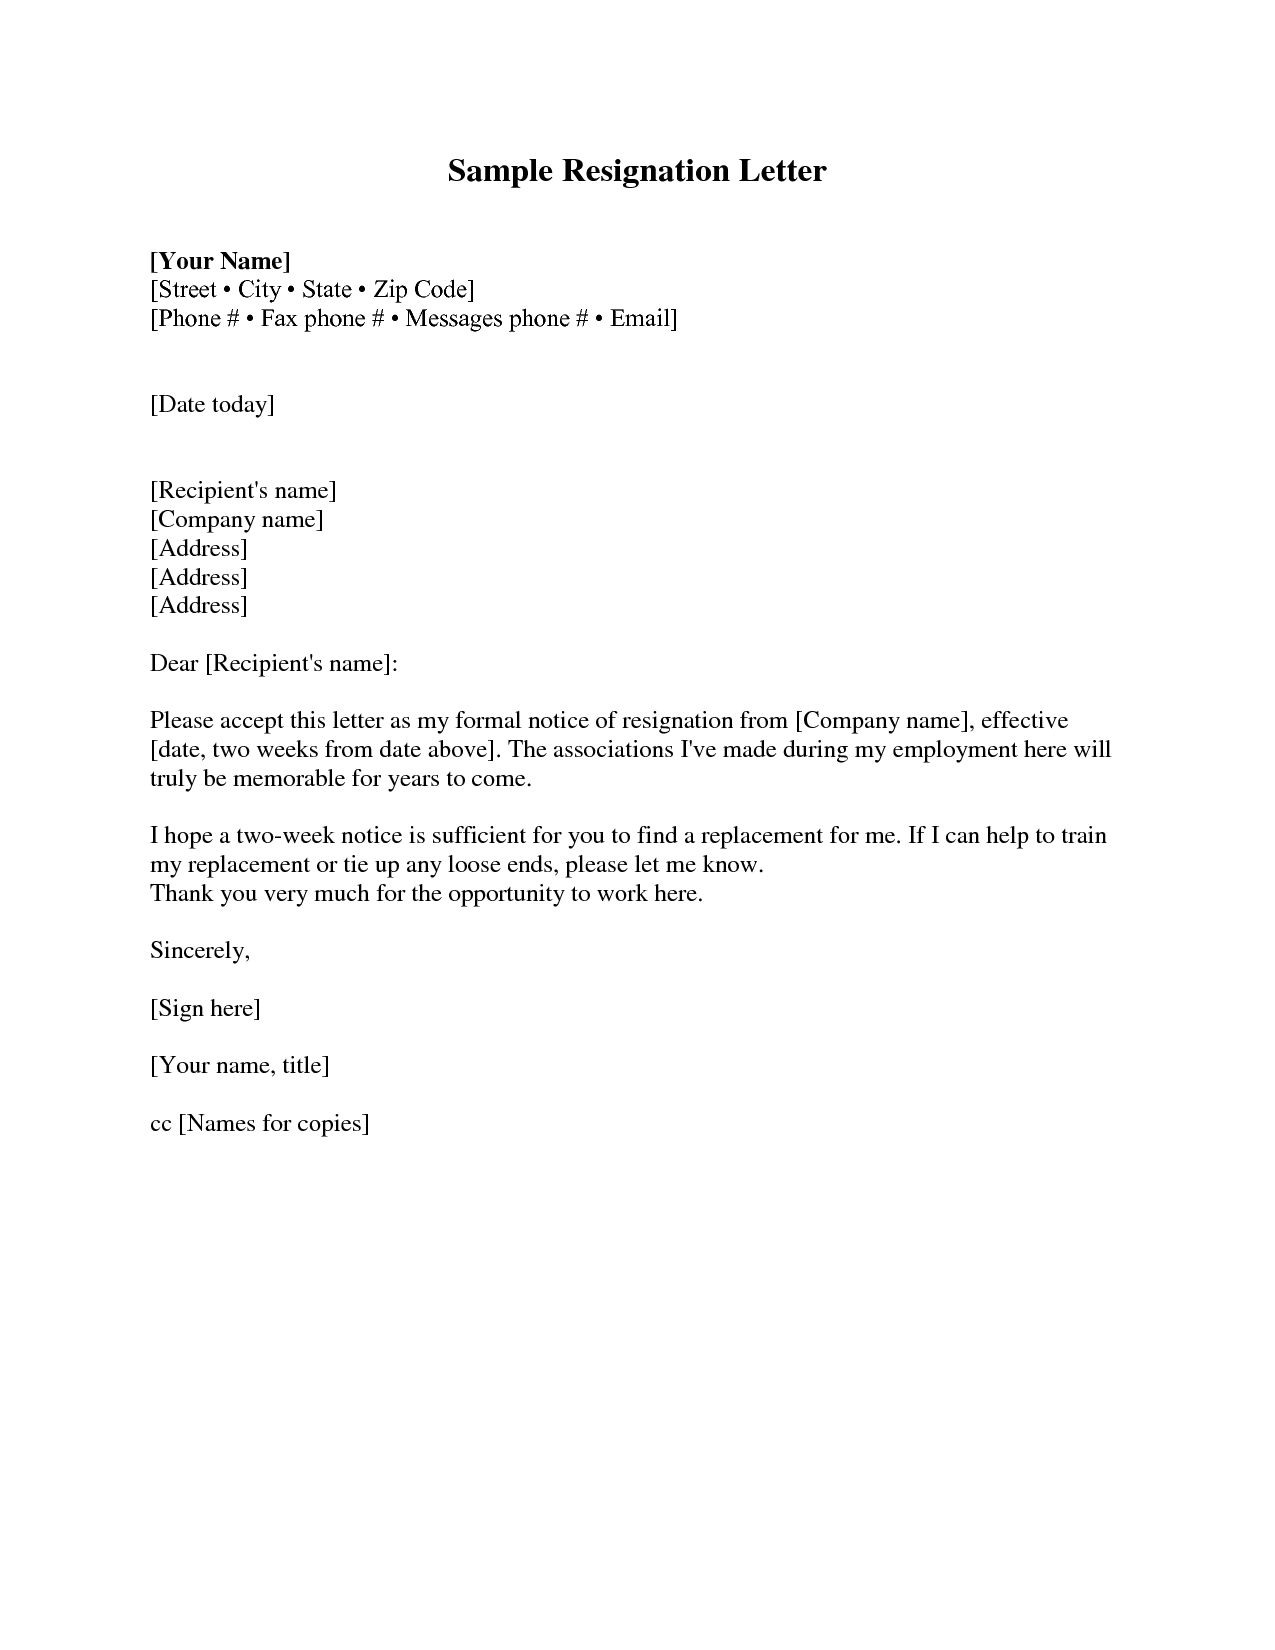 2 Week Resignation Letter Template - Resignation Letter Sample 2 Weeks Notice Free2img